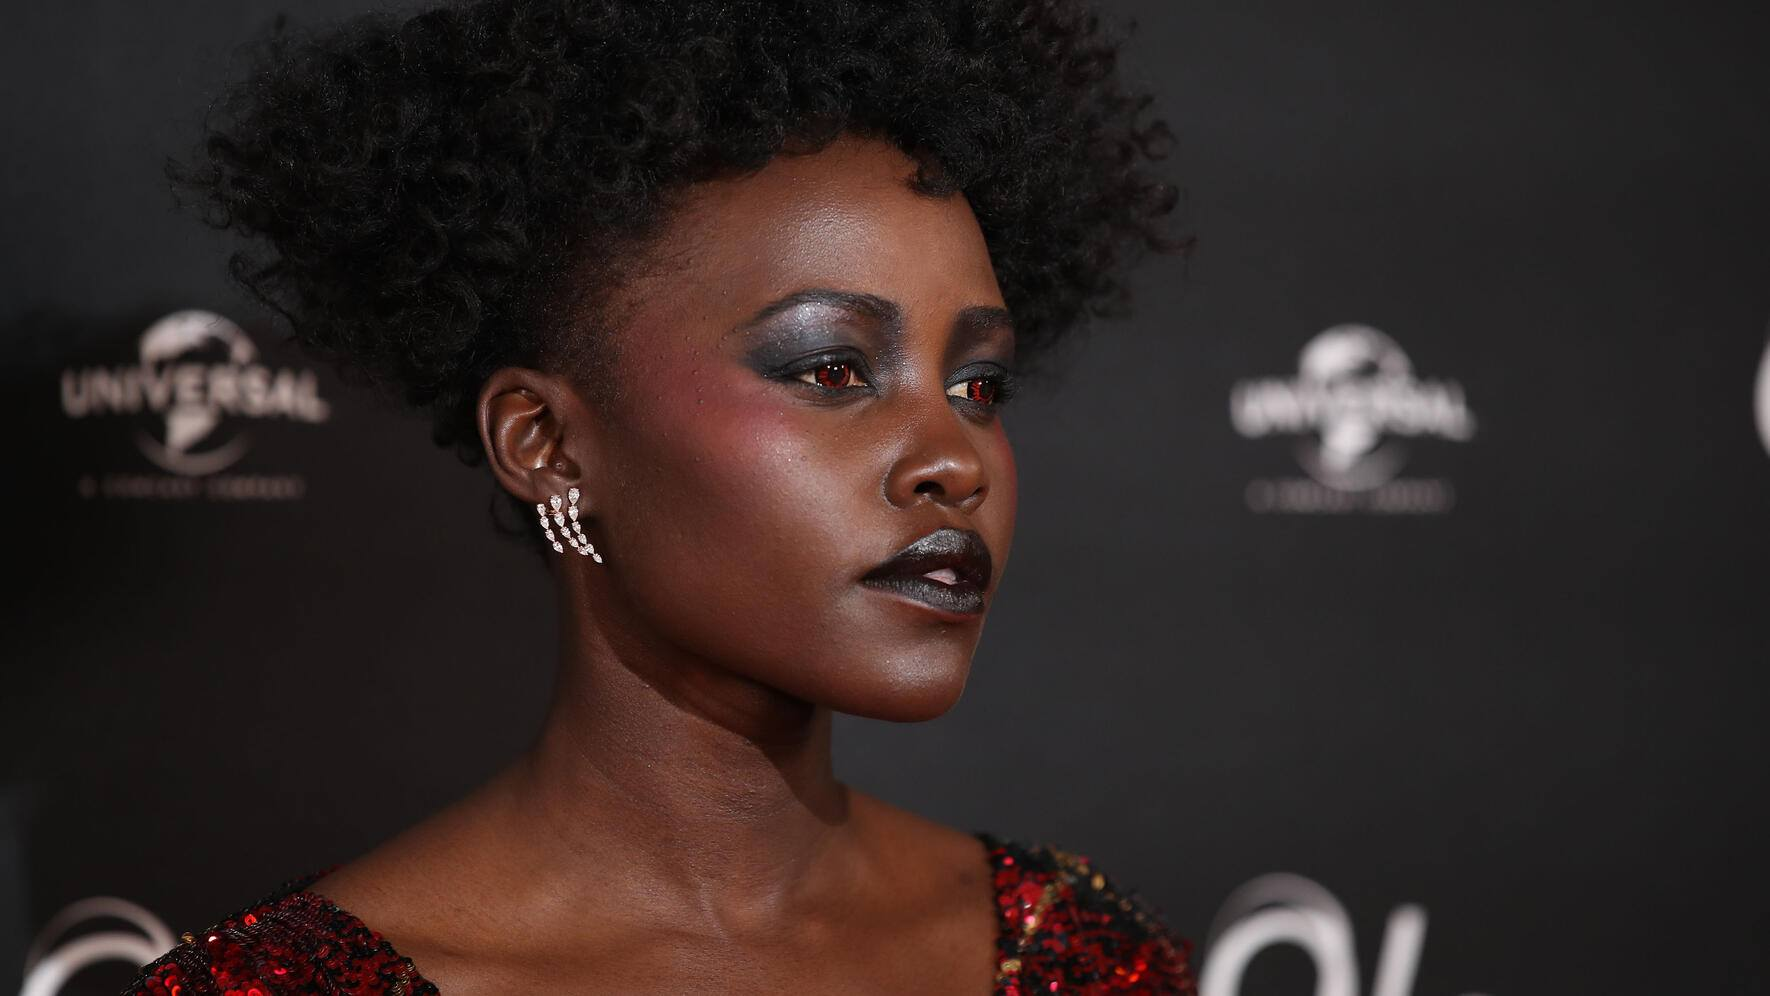 LONDON, ENGLAND - MARCH 14: Lupita Nyong'o attends the screening of 'Us' at Picturehouse Central on March 14, 2019 in London, England. (Photo by Mike Marsland/Mike Marsland/WireImage)